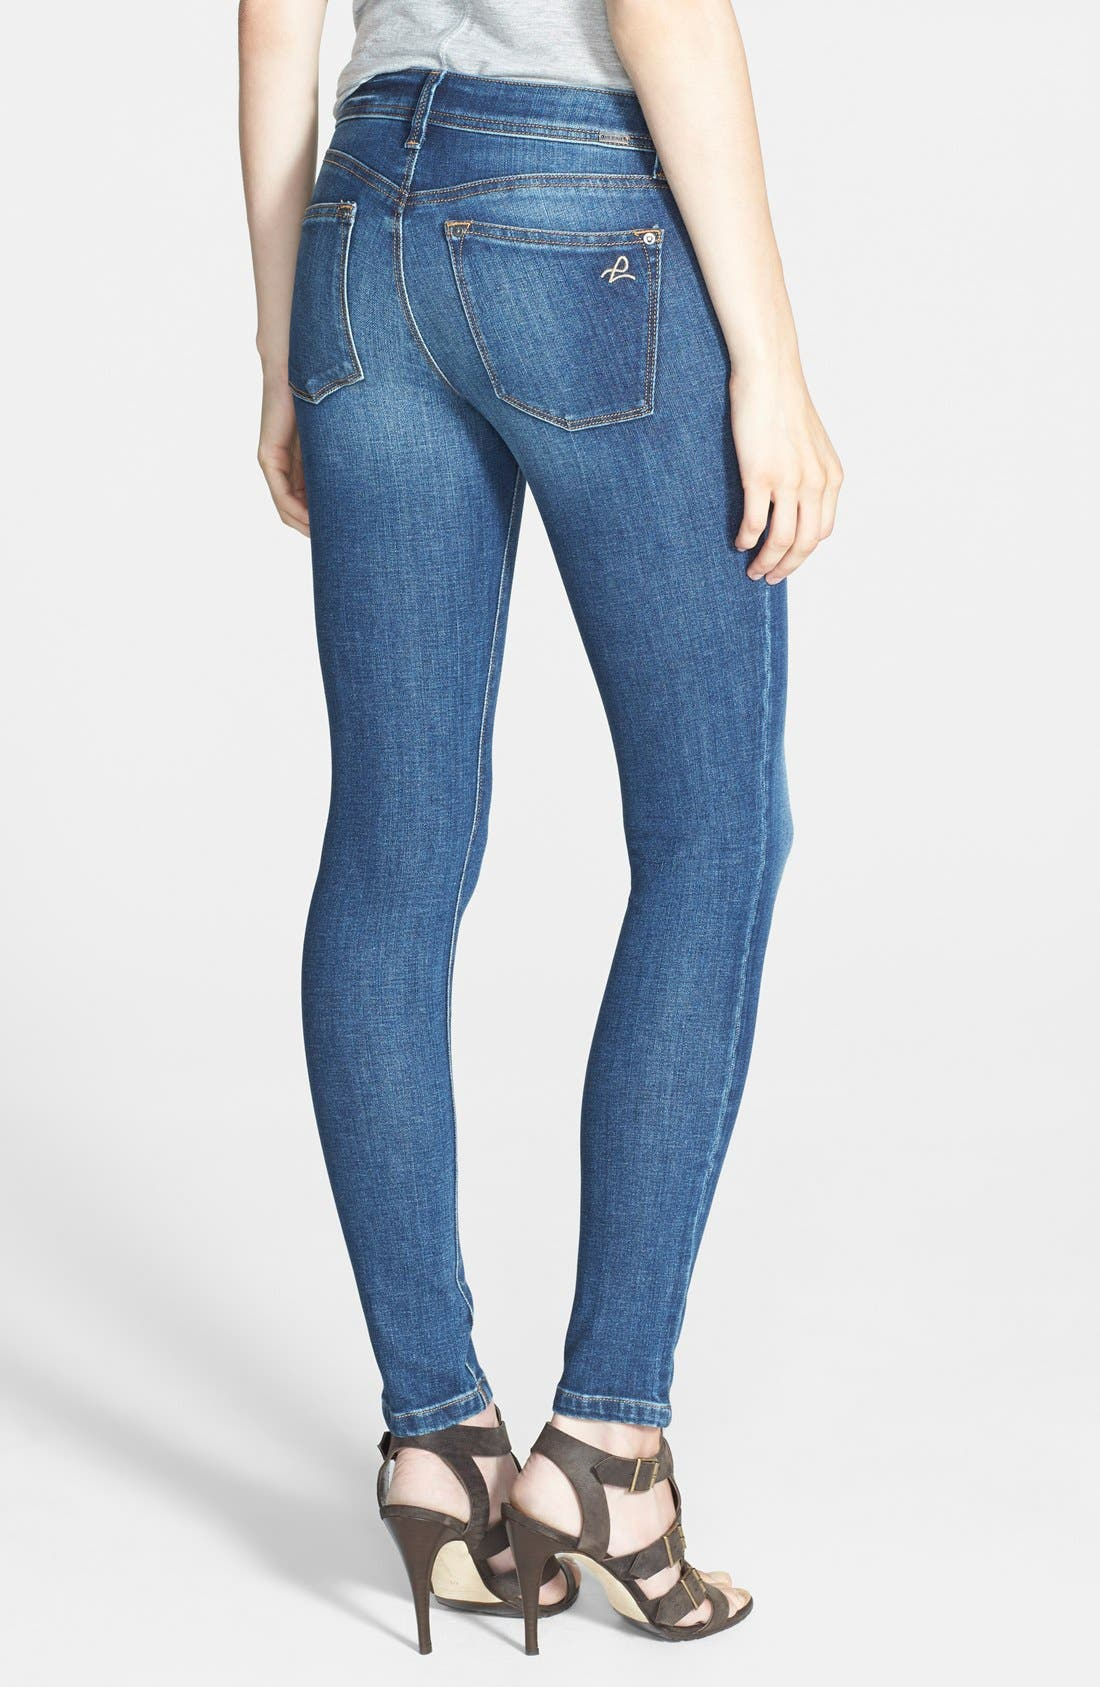 Alternate Image 2  - DL1961 'Emma' Power Legging Jeans (Cashel)